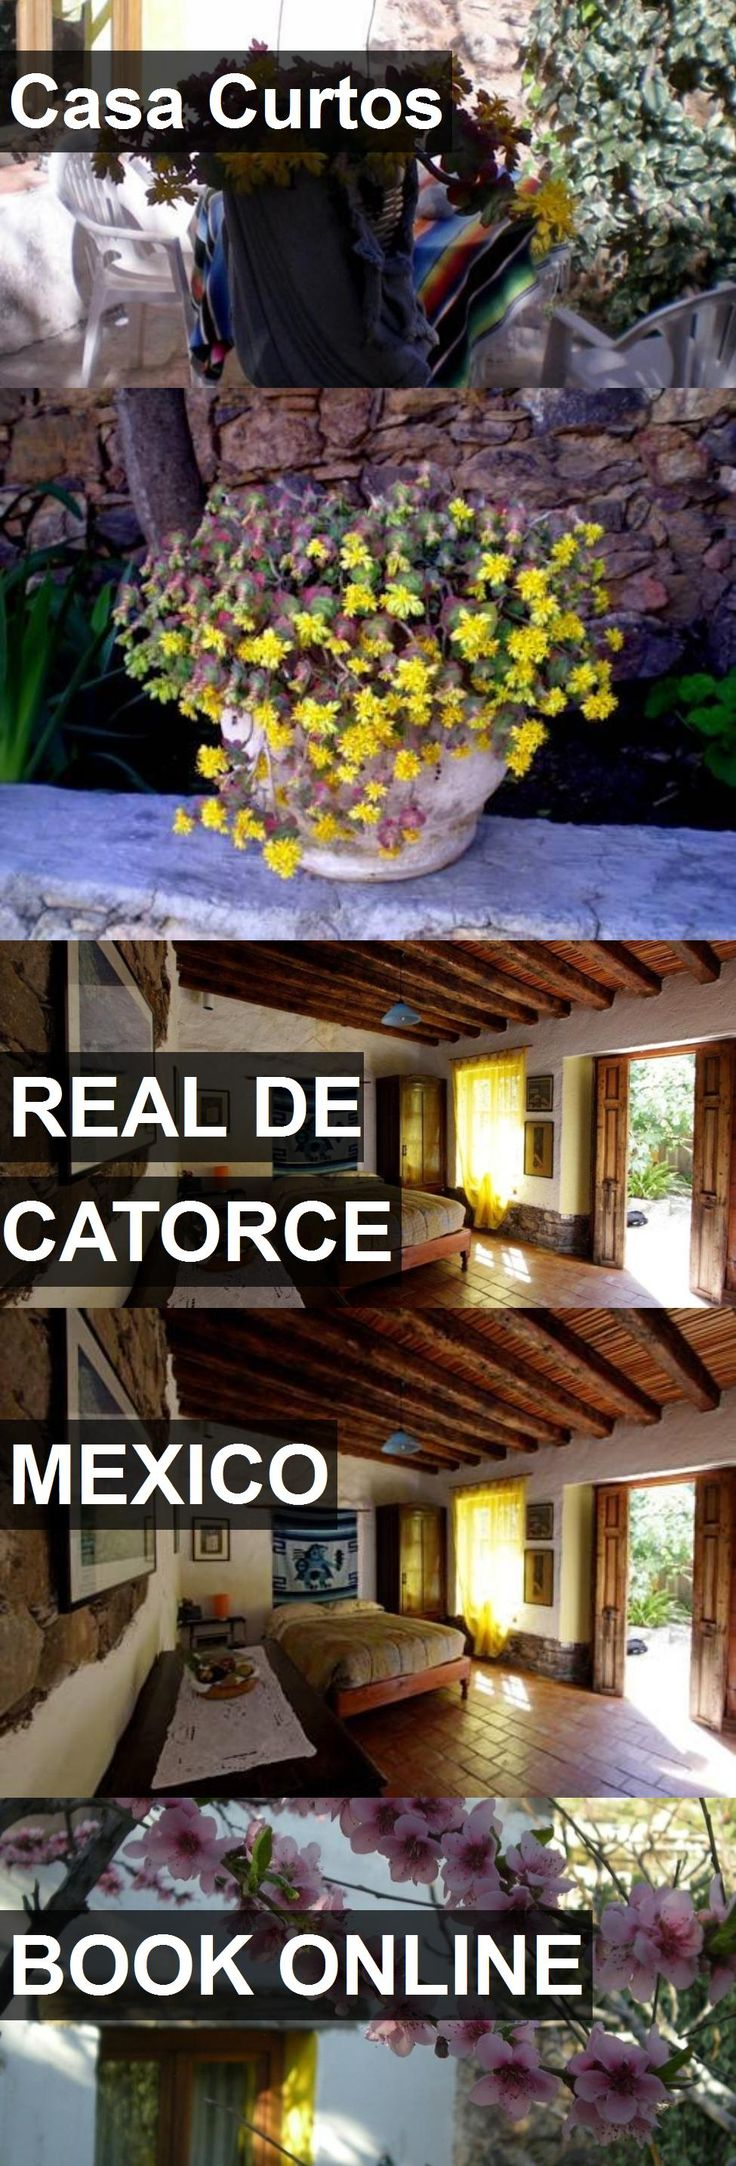 Hotel Casa Curtos in Real de Catorce, Mexico. For more information, photos, reviews and best prices please follow the link. #Mexico #RealdeCatorce #travel #vacation #hotel